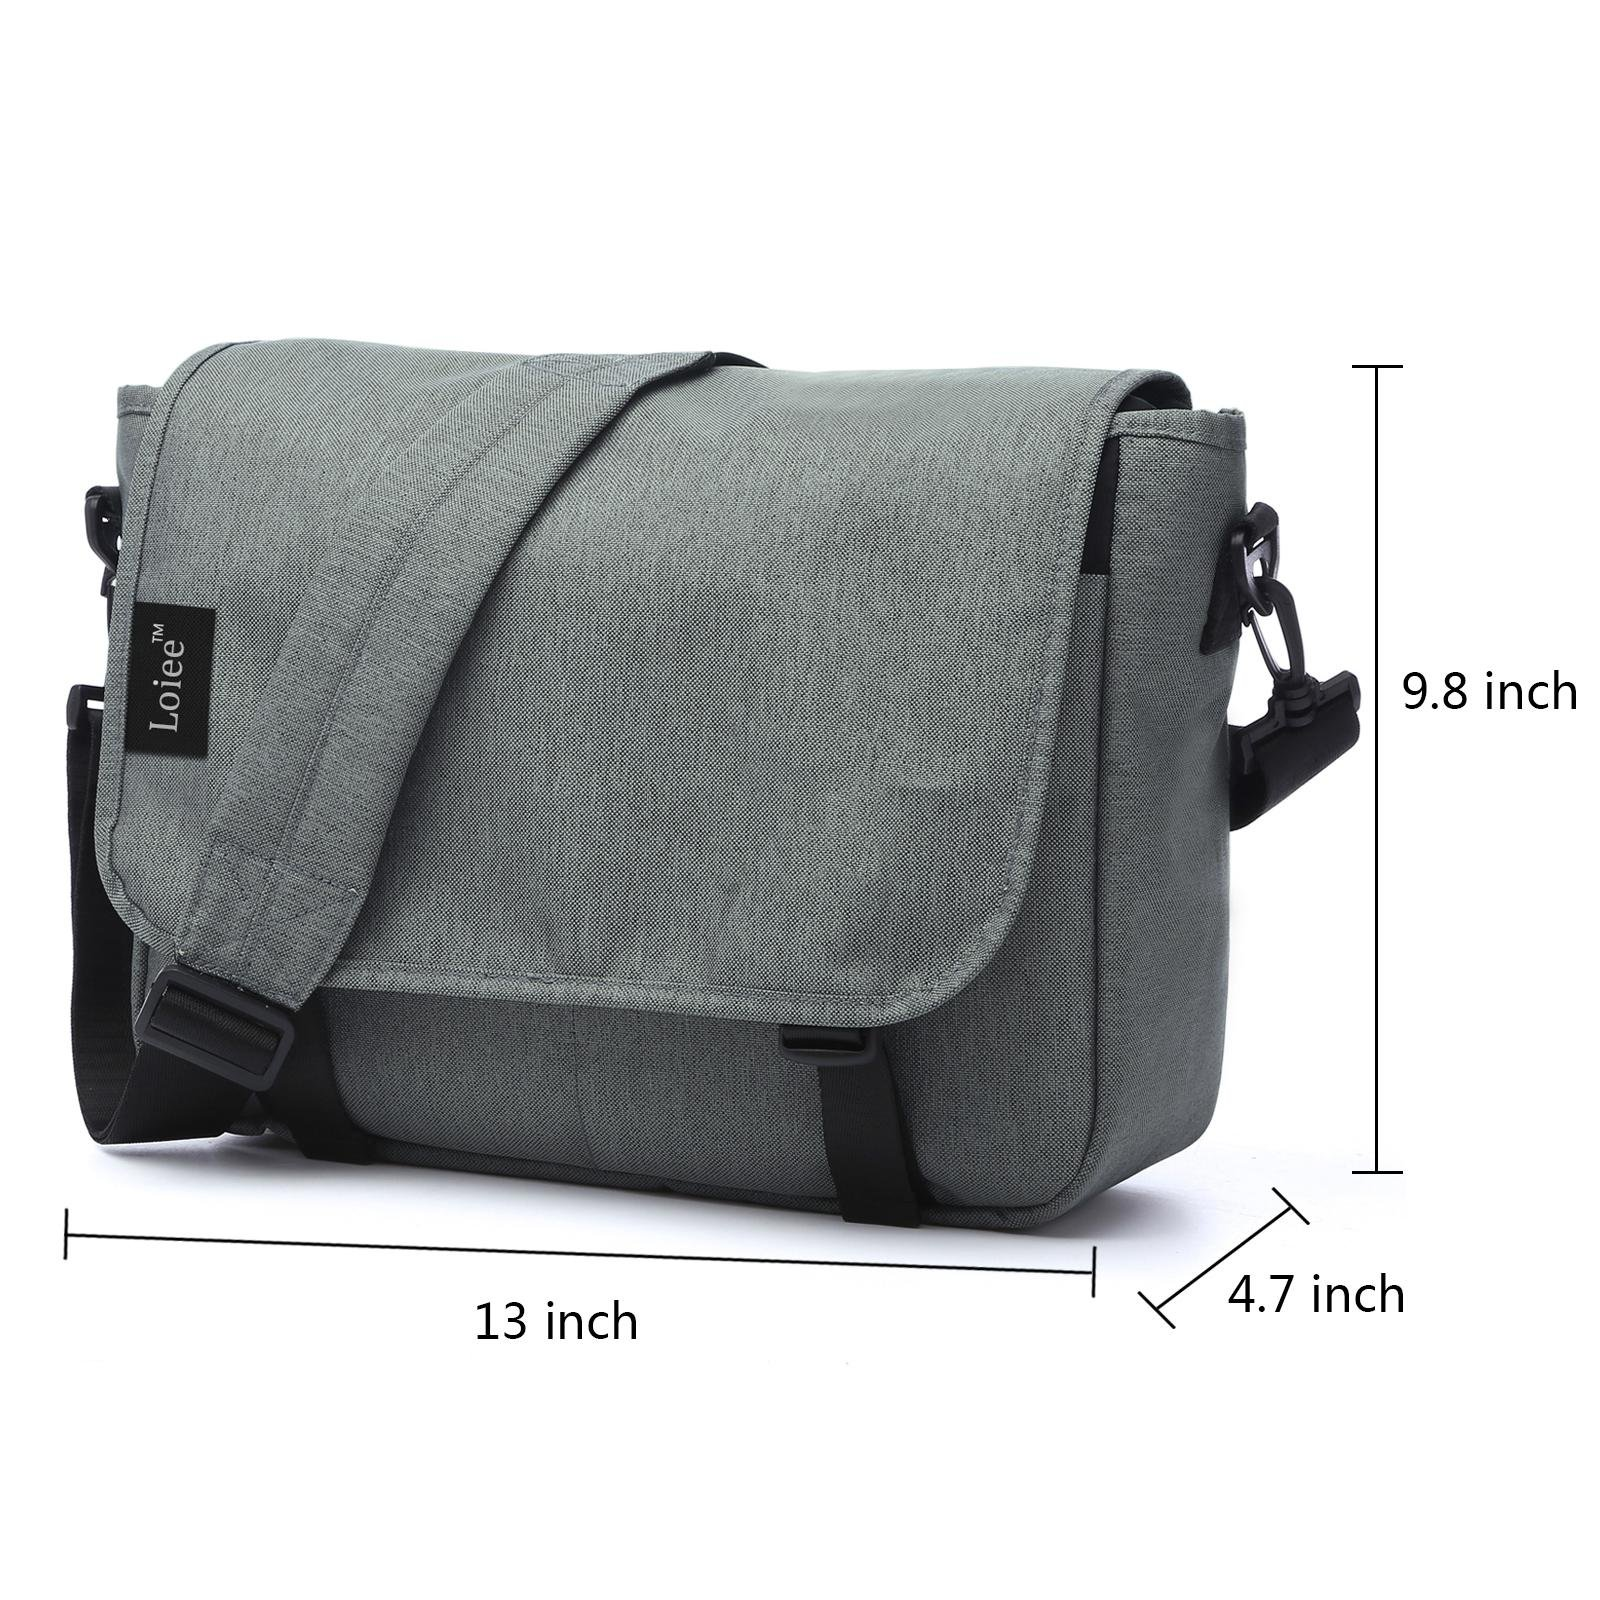 Loiee 14 inches Classic Canvas Messenger Bag,Water Resistant Vintage School Bag,Grey by Loiee (Image #2)